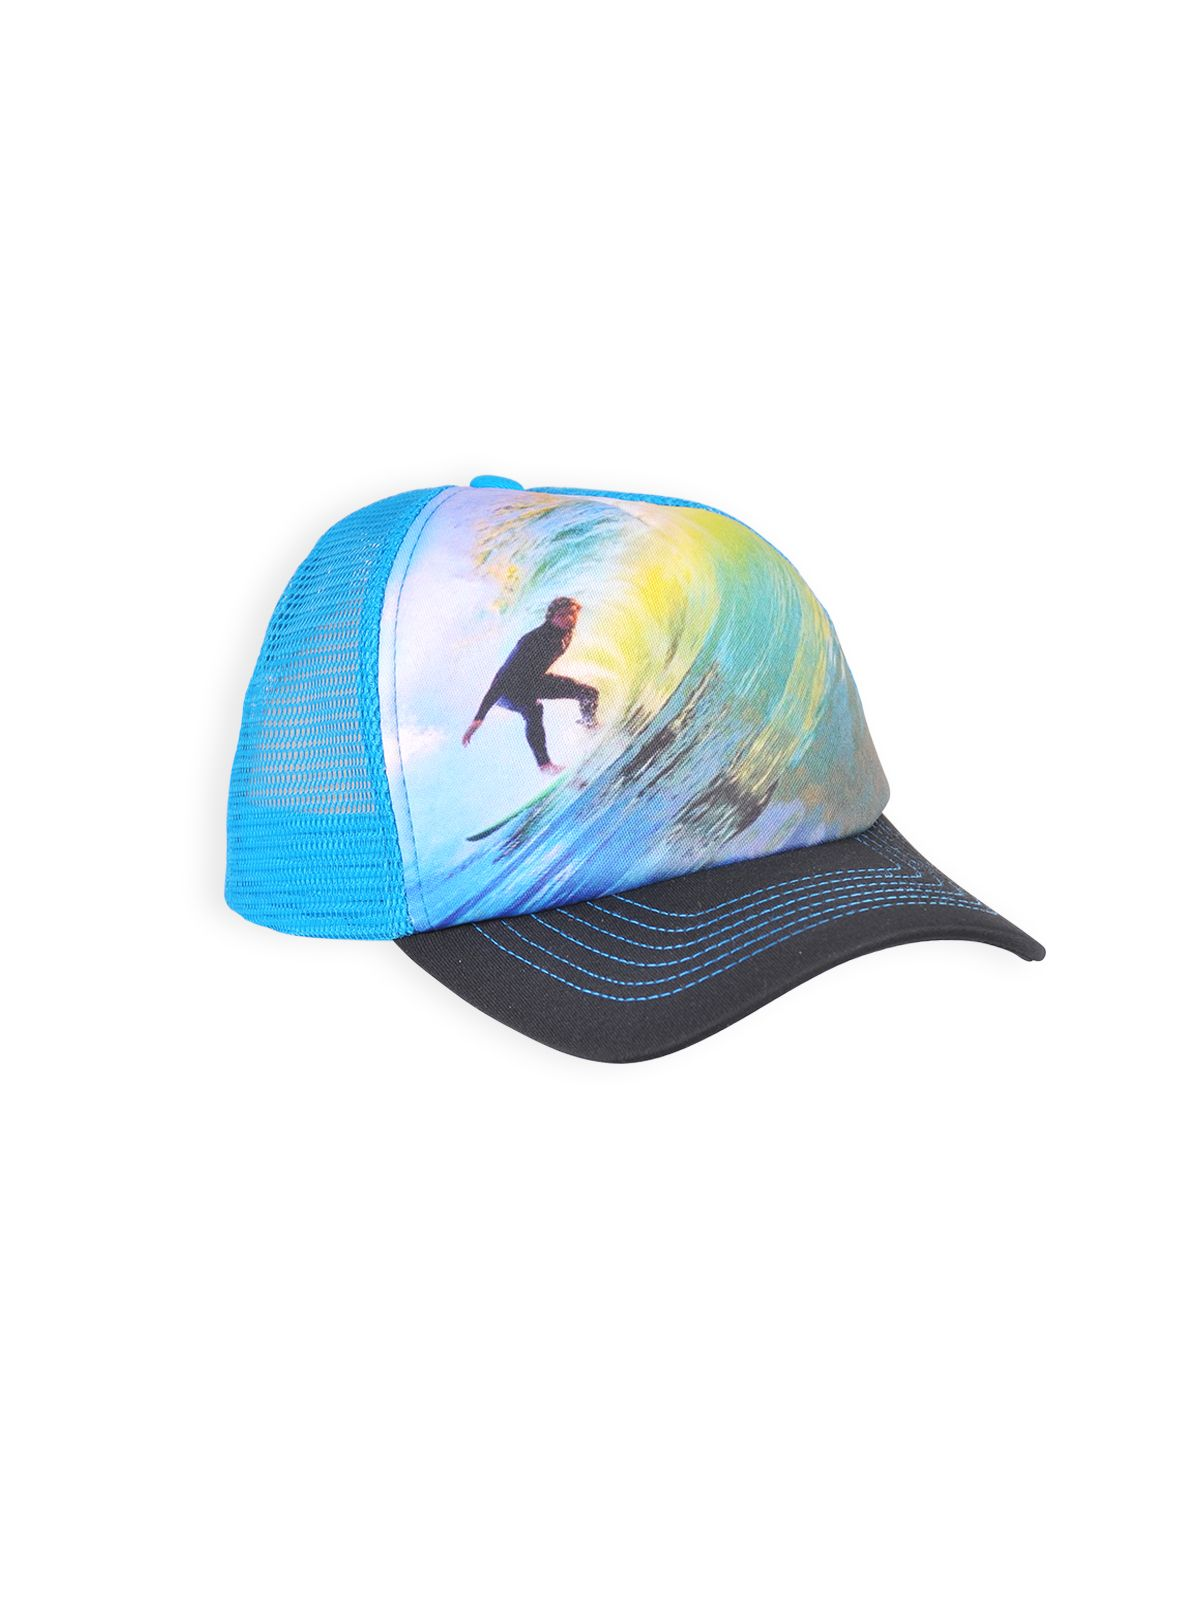 Boys photographic trucker hat